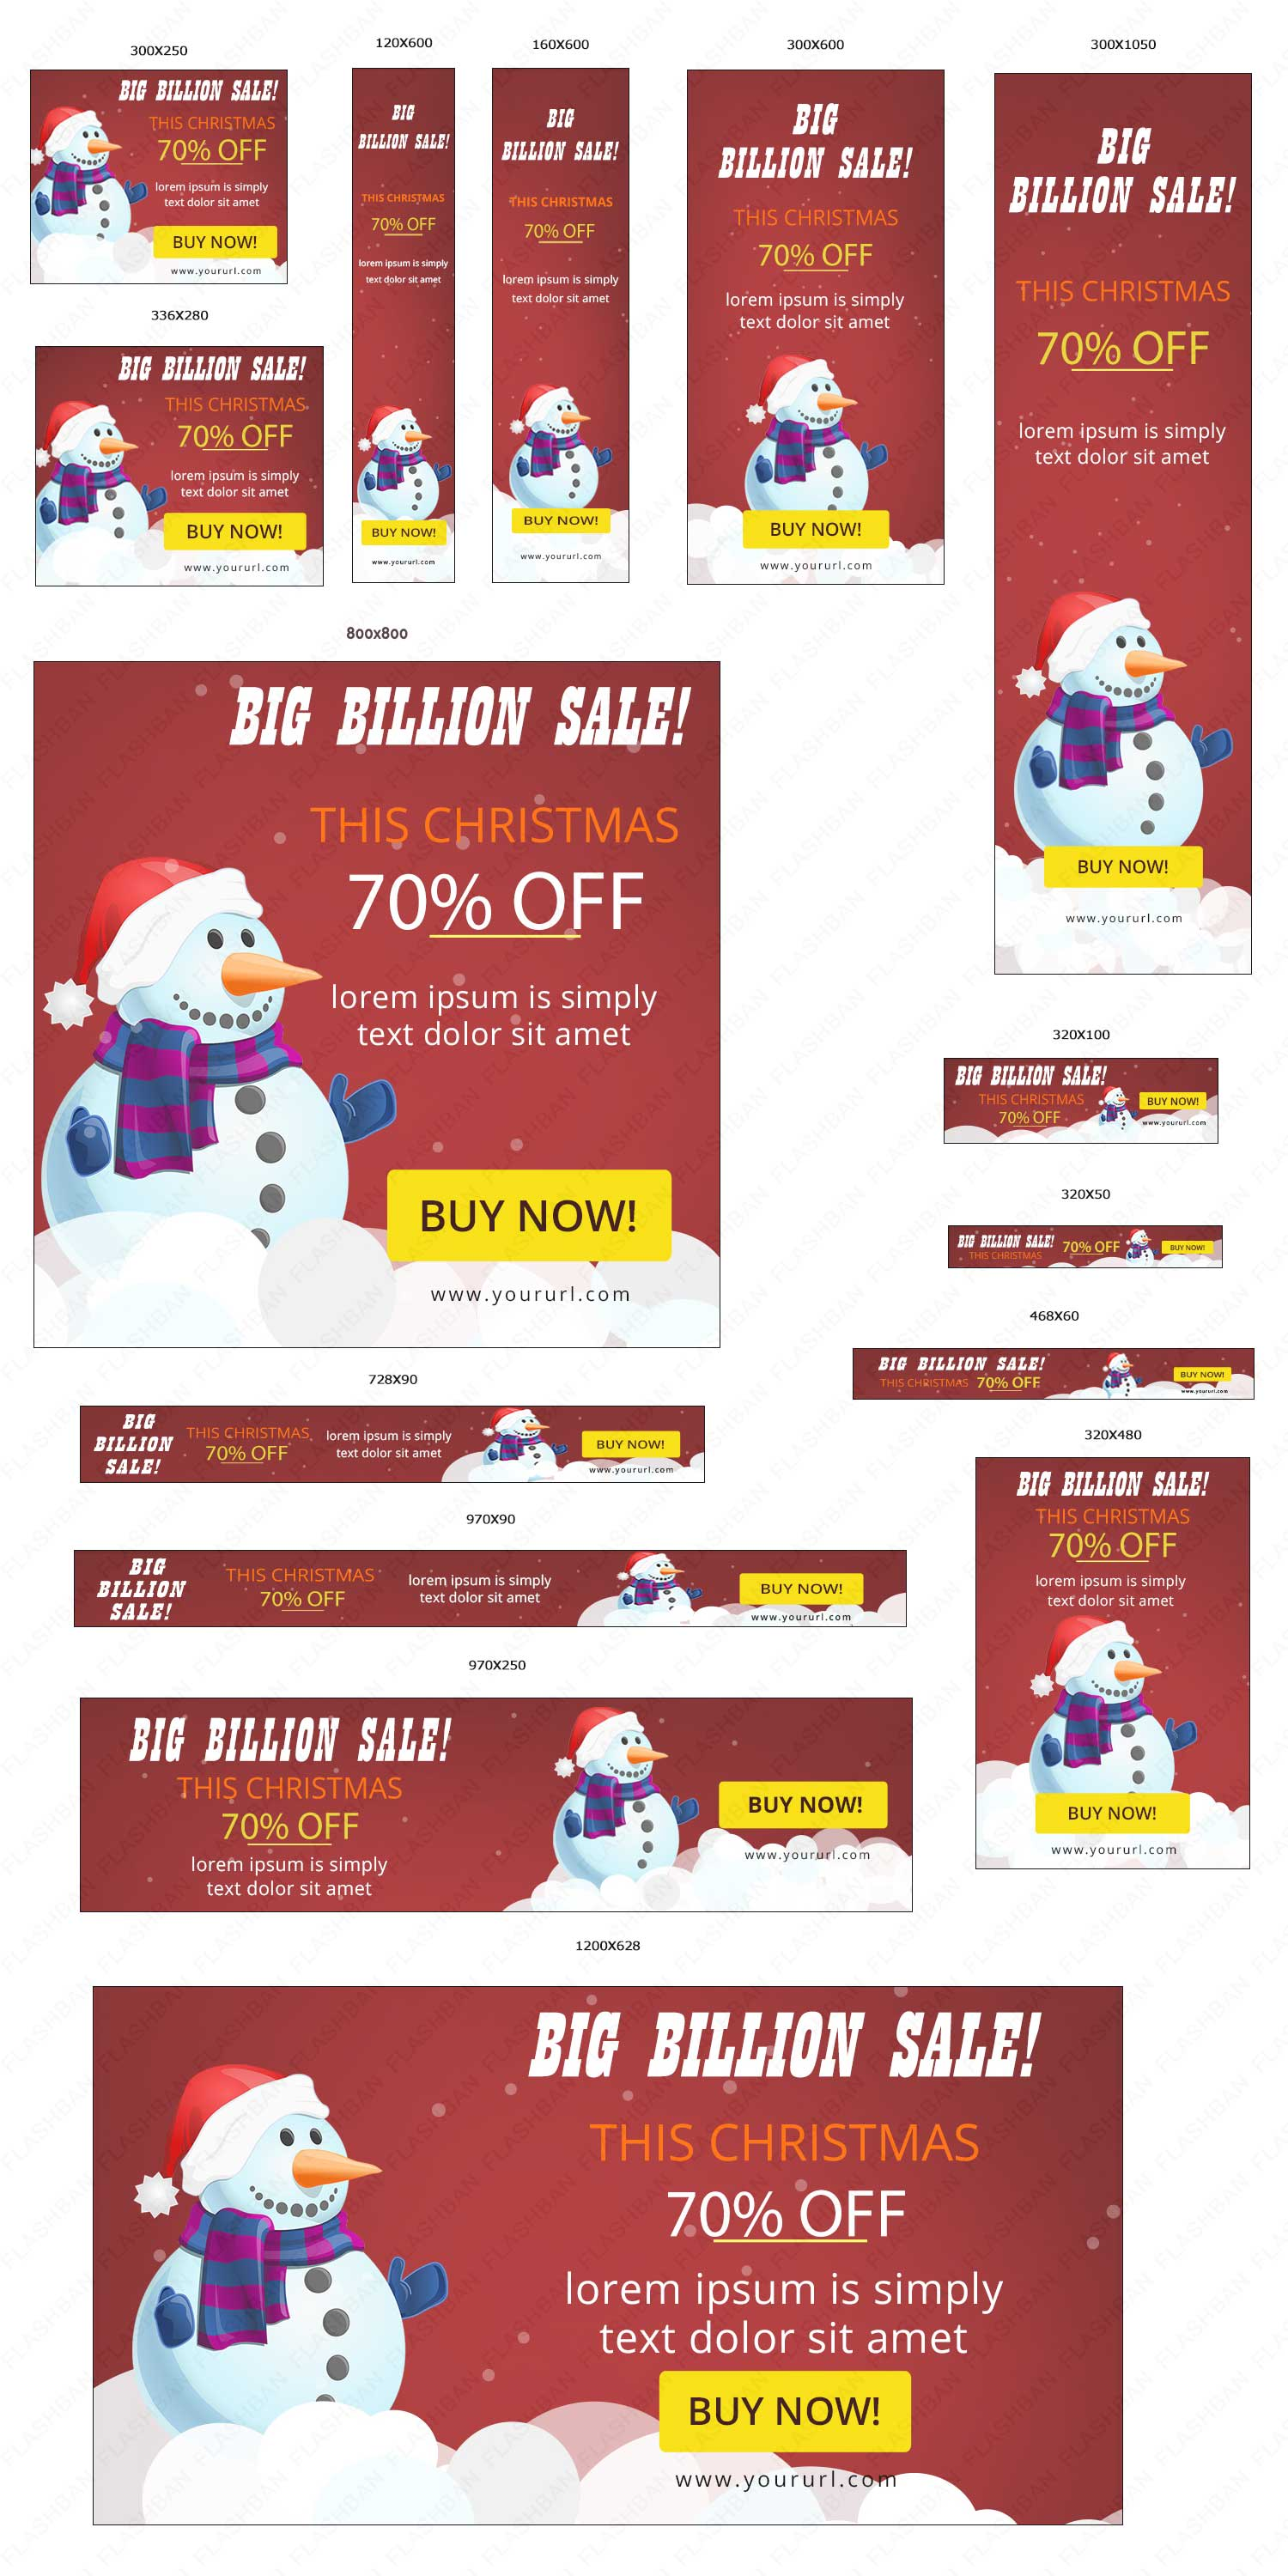 Ad Banner for Christmas Sale